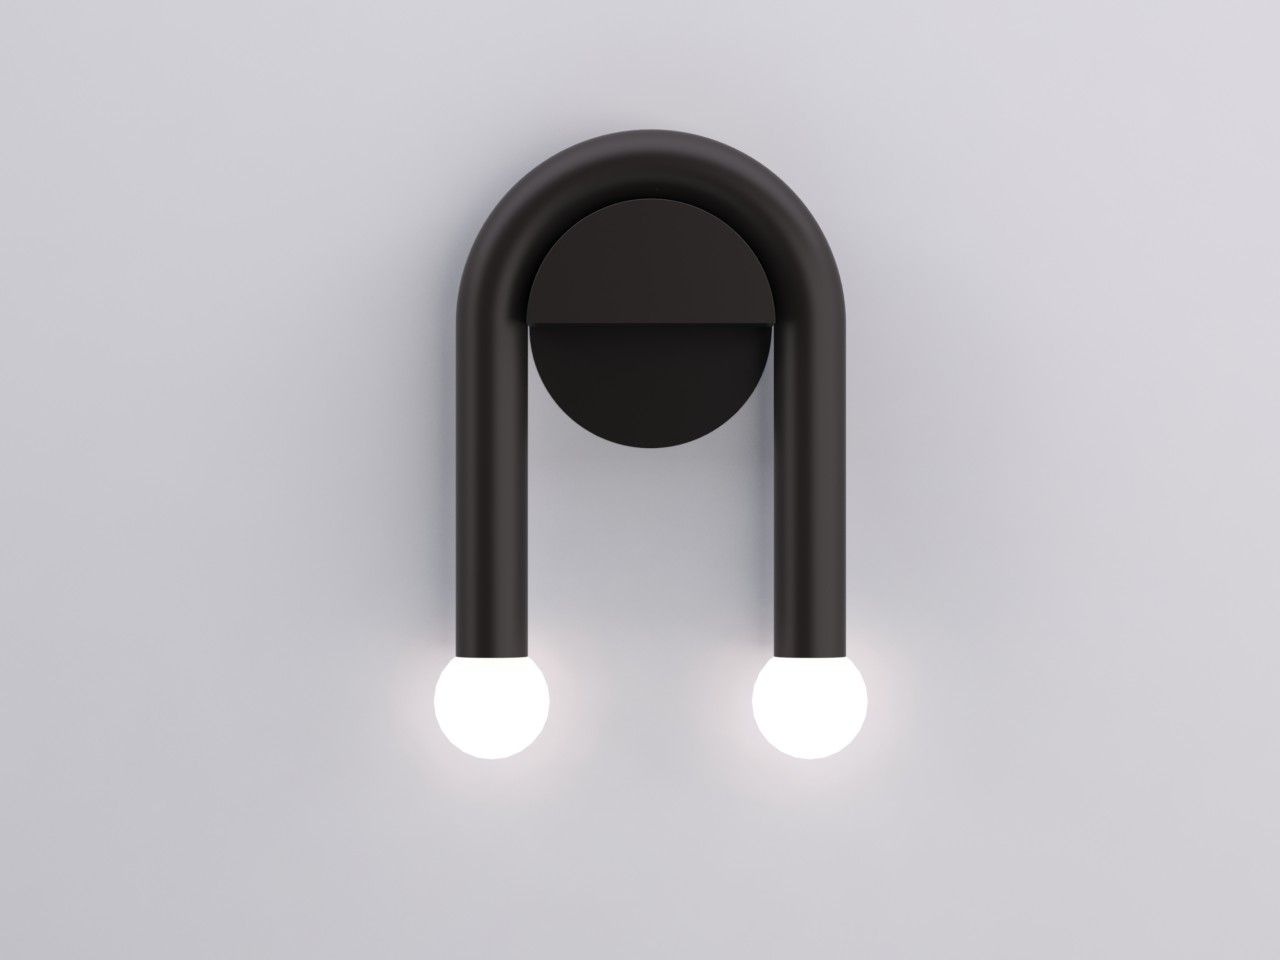 The C-Light Collection by Bower | Lights, Oil rubbed bronze and ...